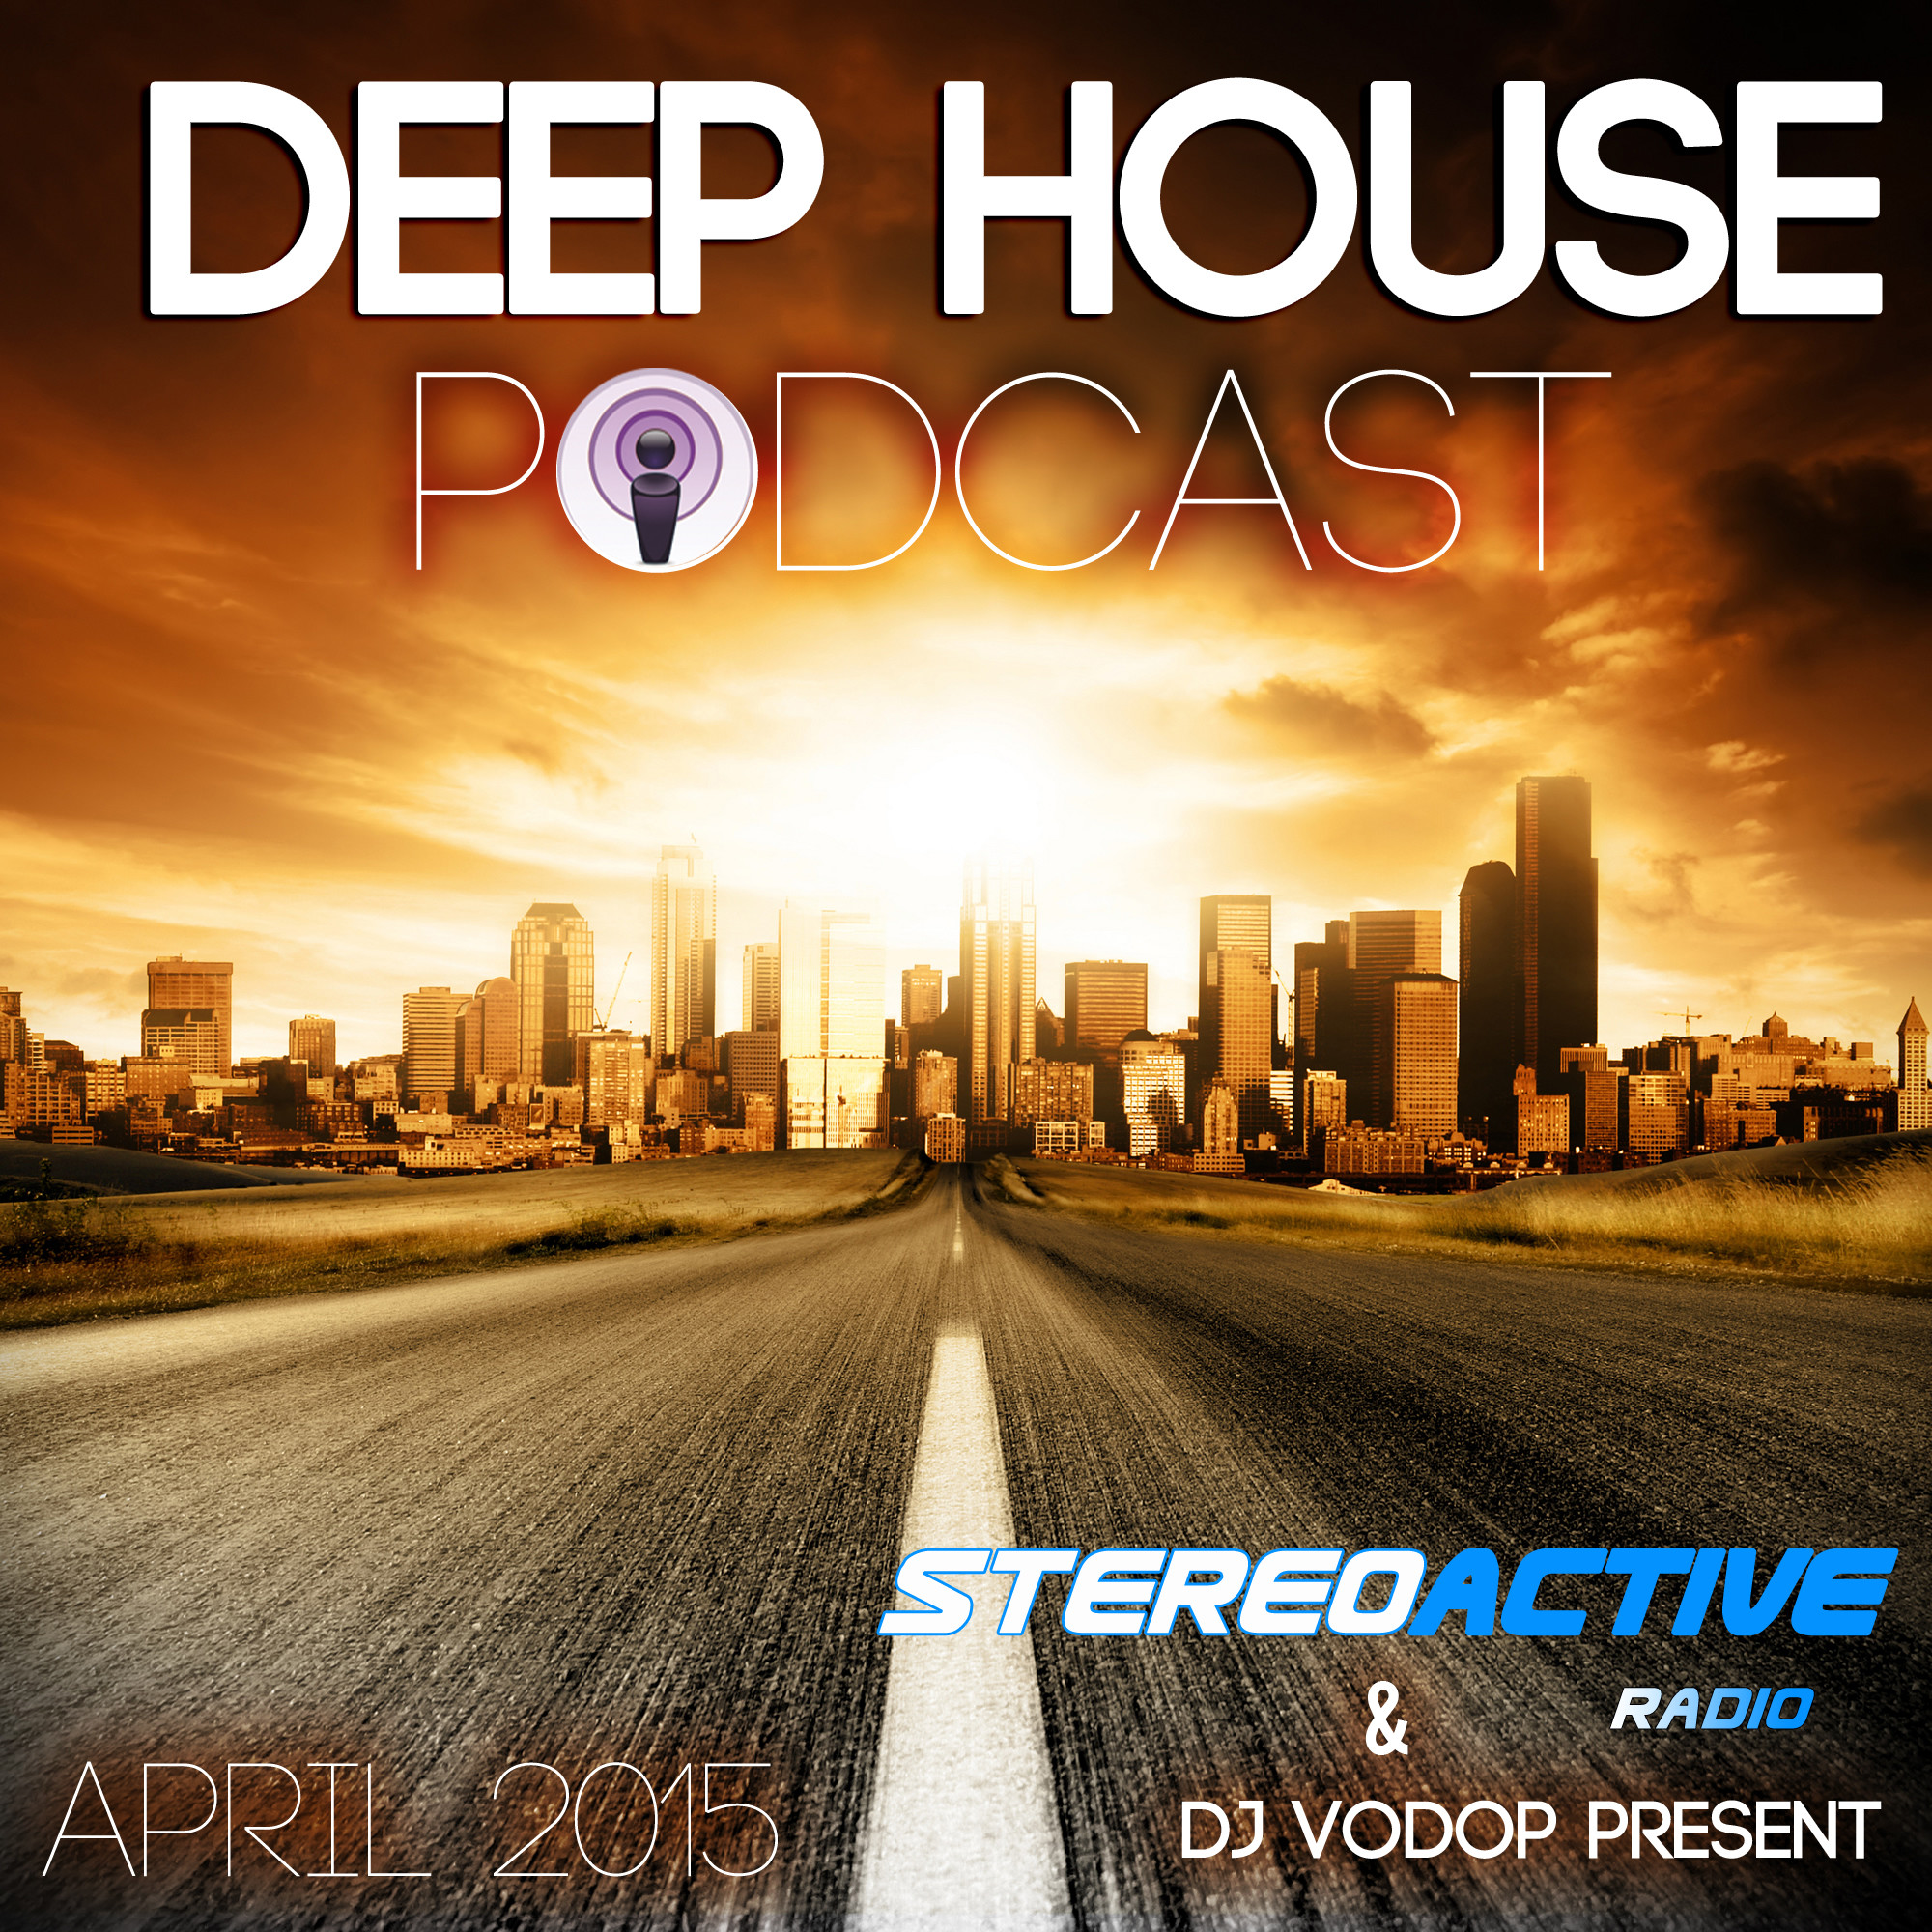 deep house podcast 4 djvodop